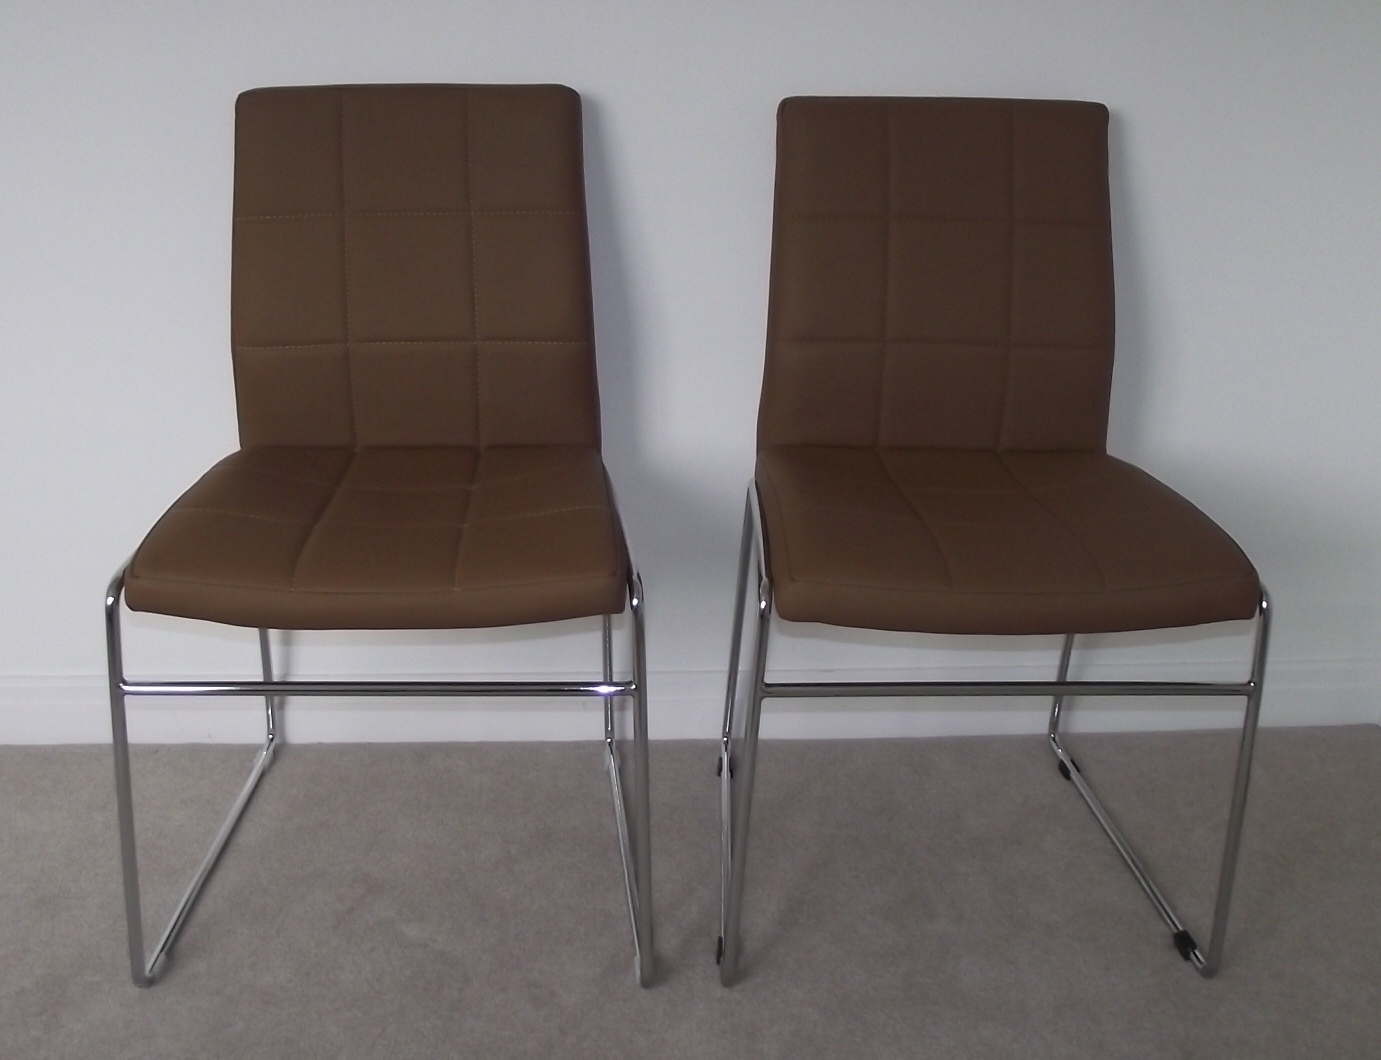 Retro Dining Chair Pair Of Retro Tan Dining Chairs With Chrome Legs Buy